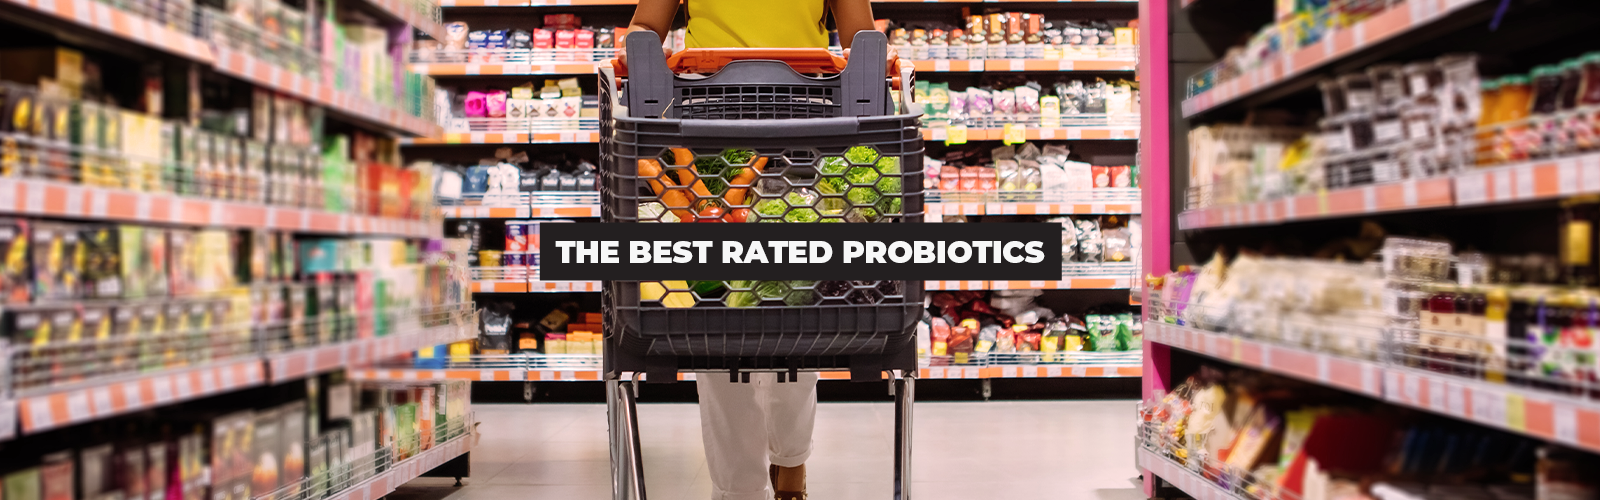 What Are the Best Rated Probiotics Available in Stores?